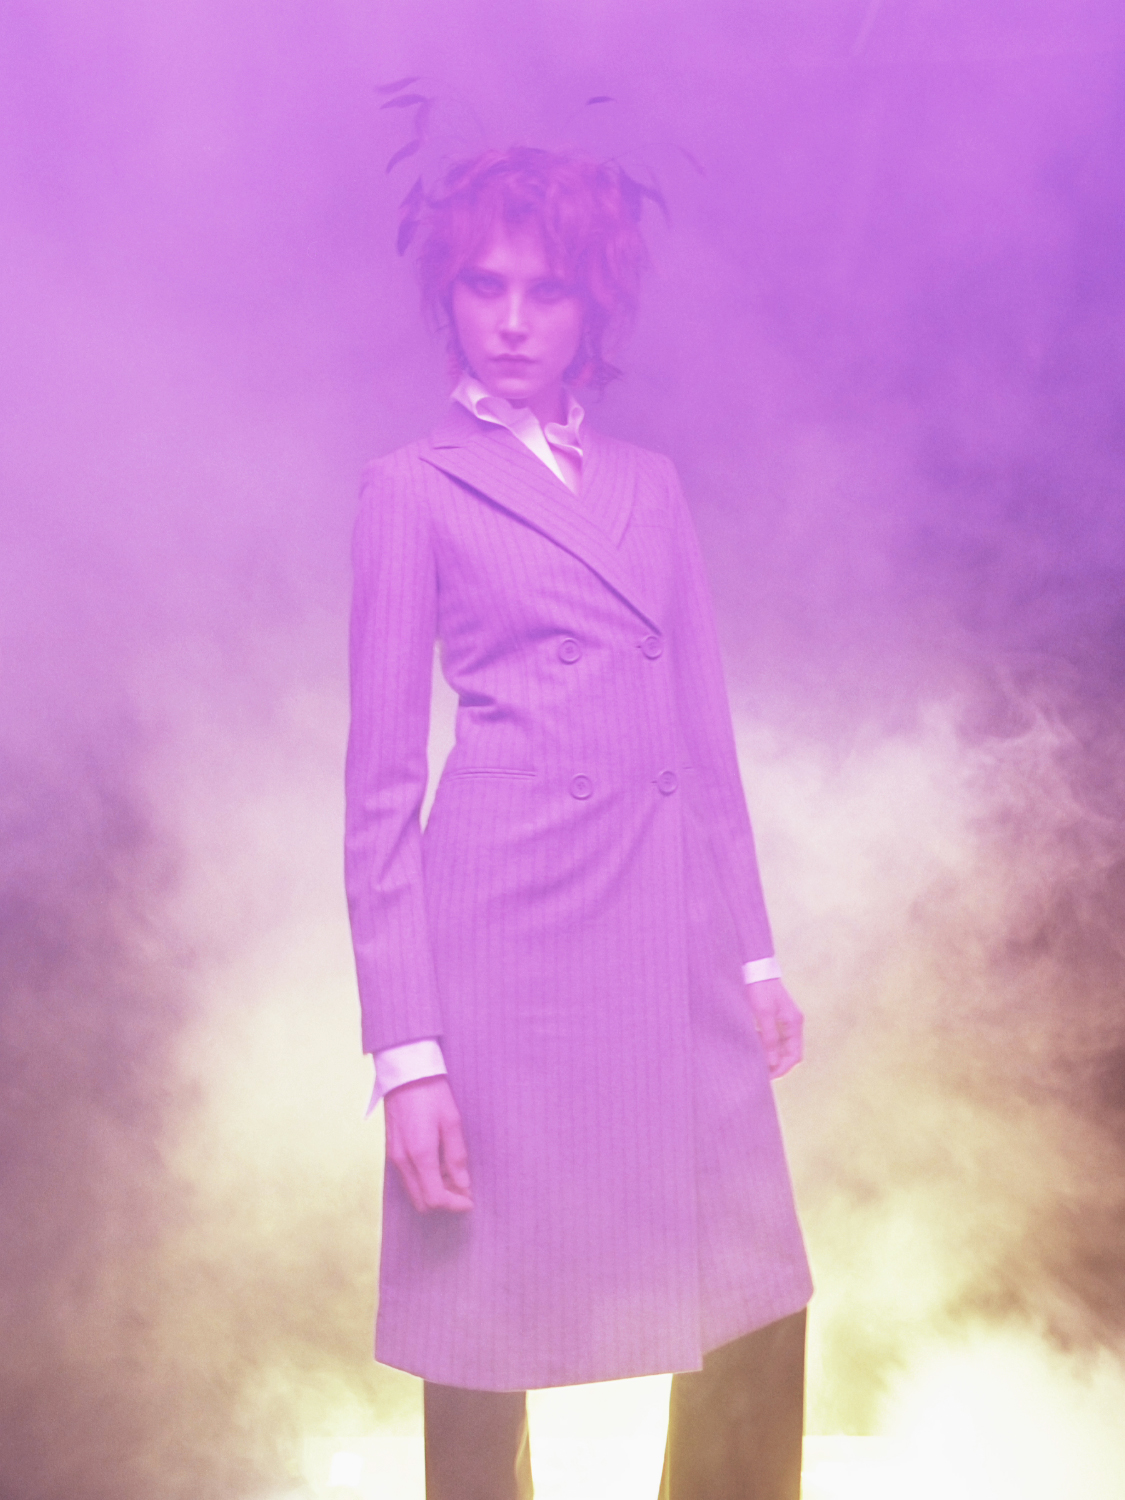 Purple+Haze+fashion+photography+by+Patrik+Andersson.jpeg